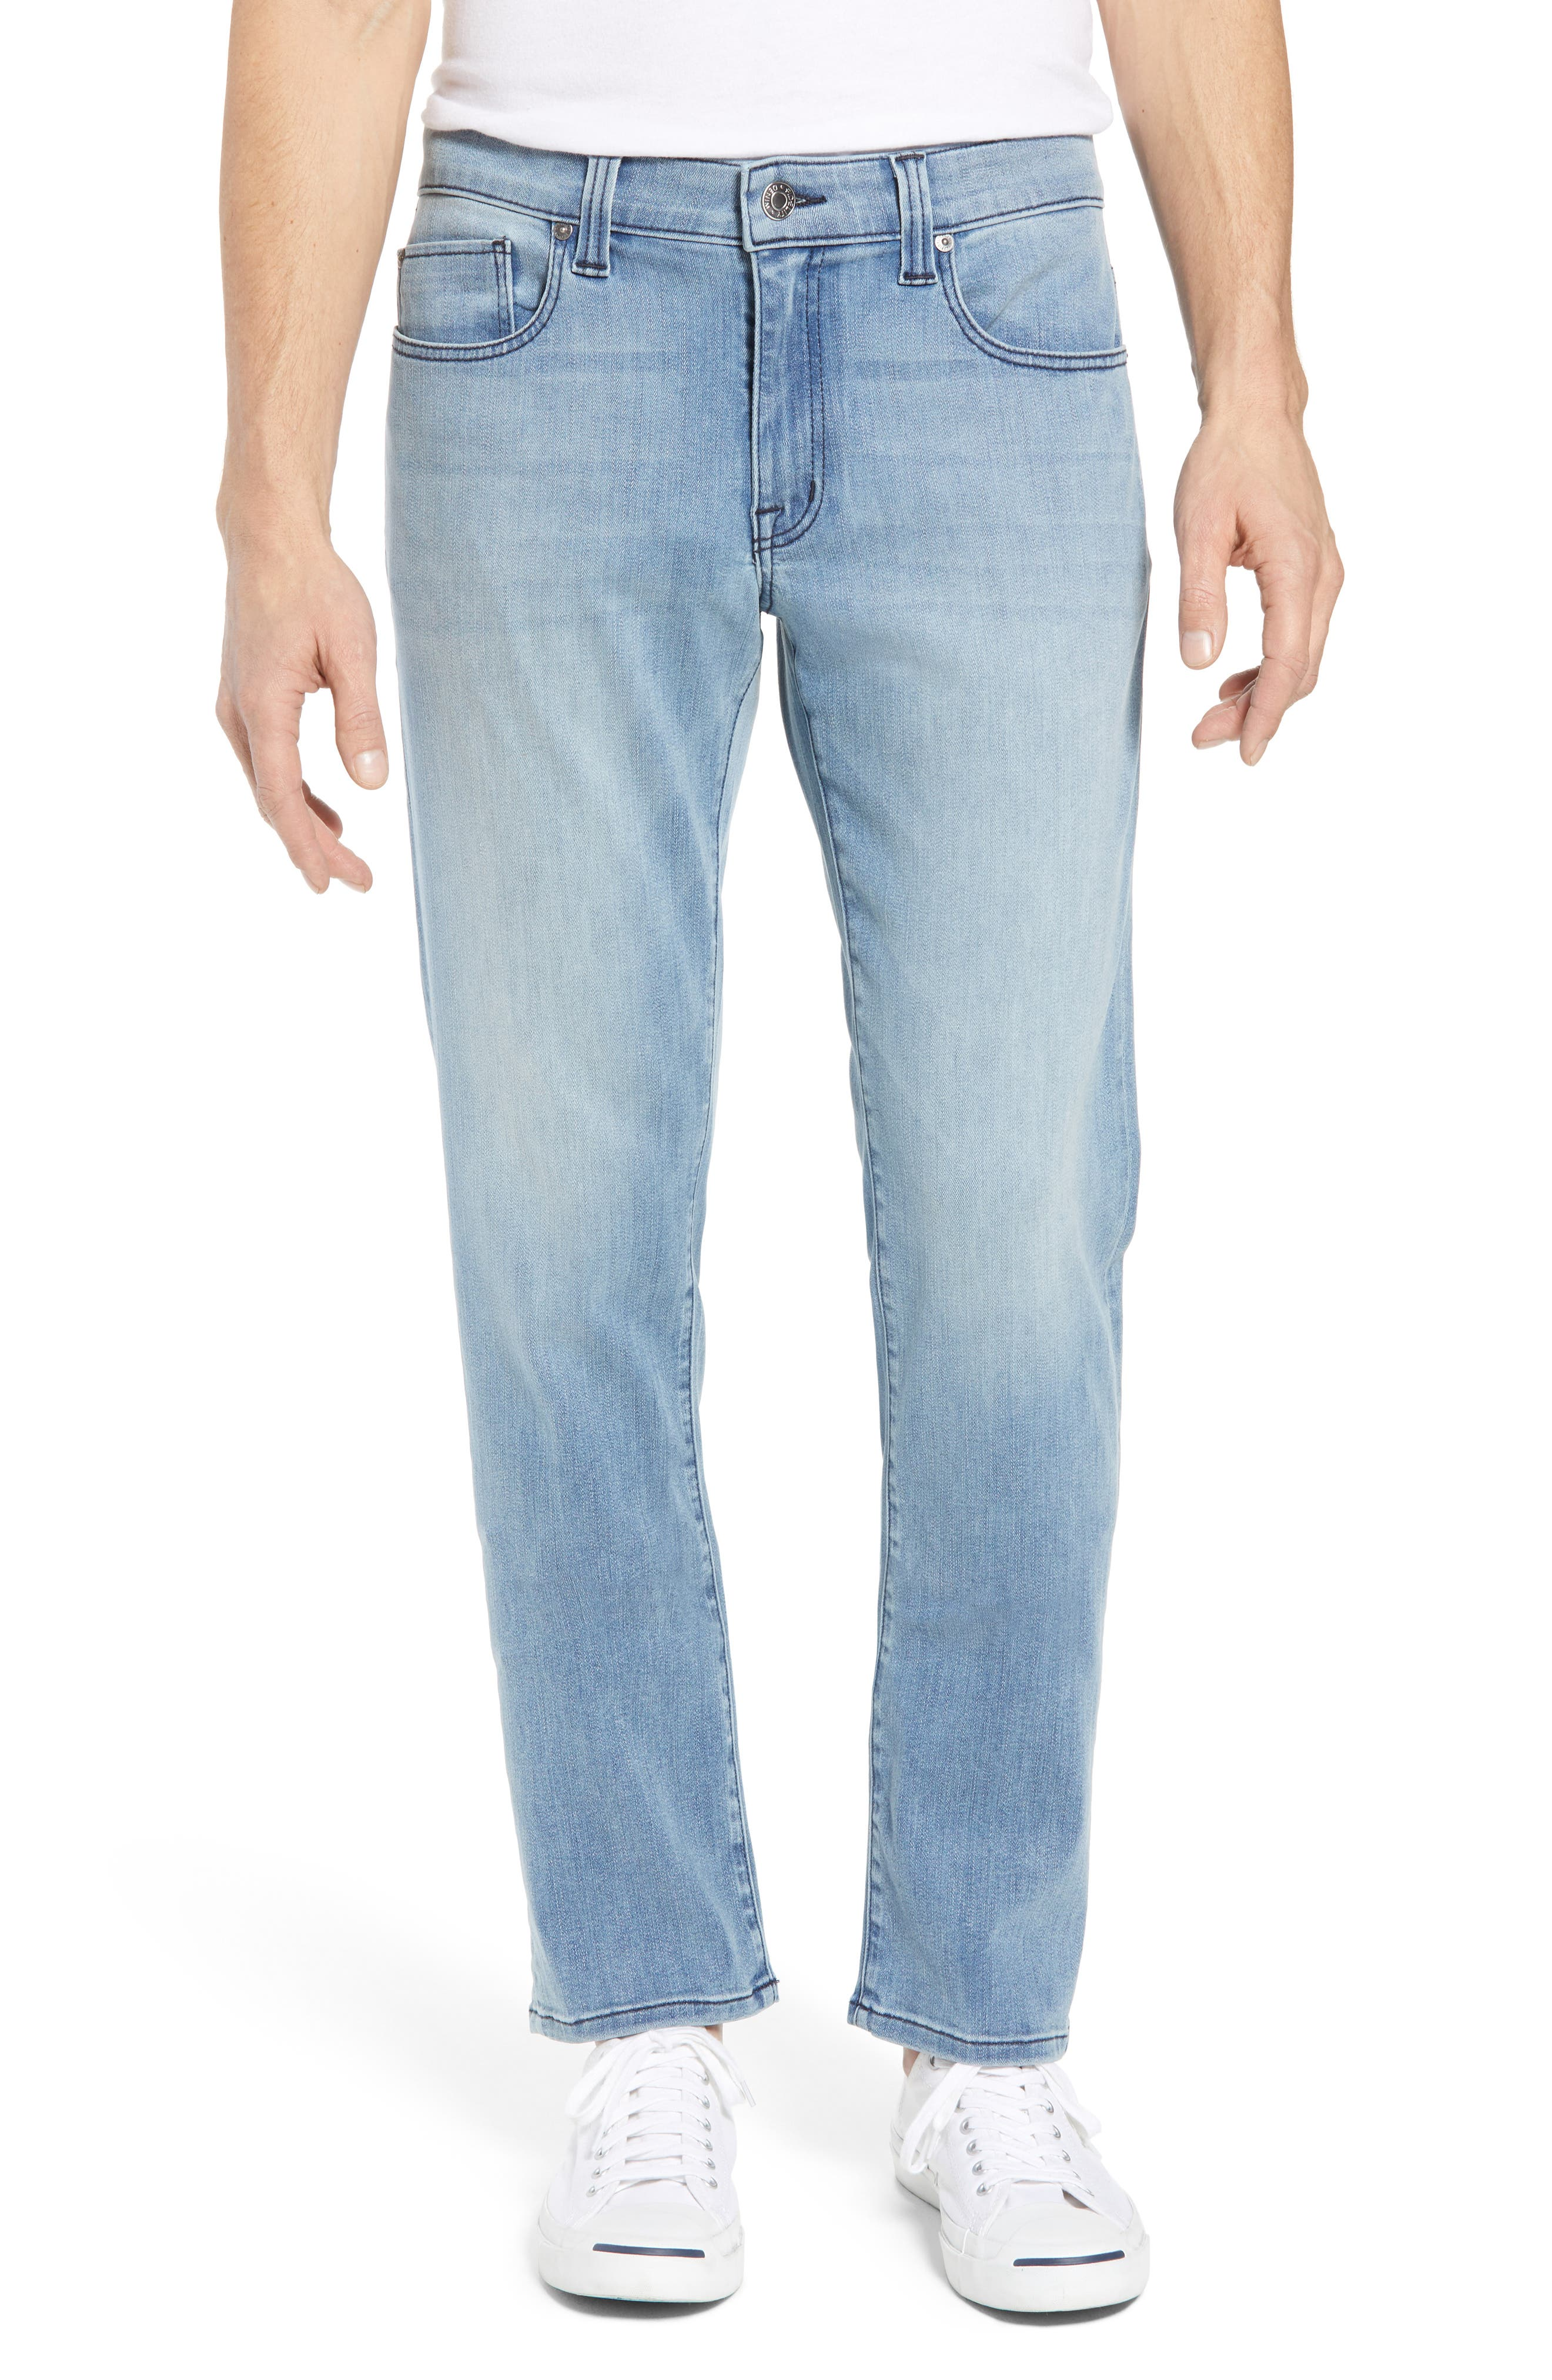 Jimmy Slim Straight Leg Jeans,                         Main,                         color,